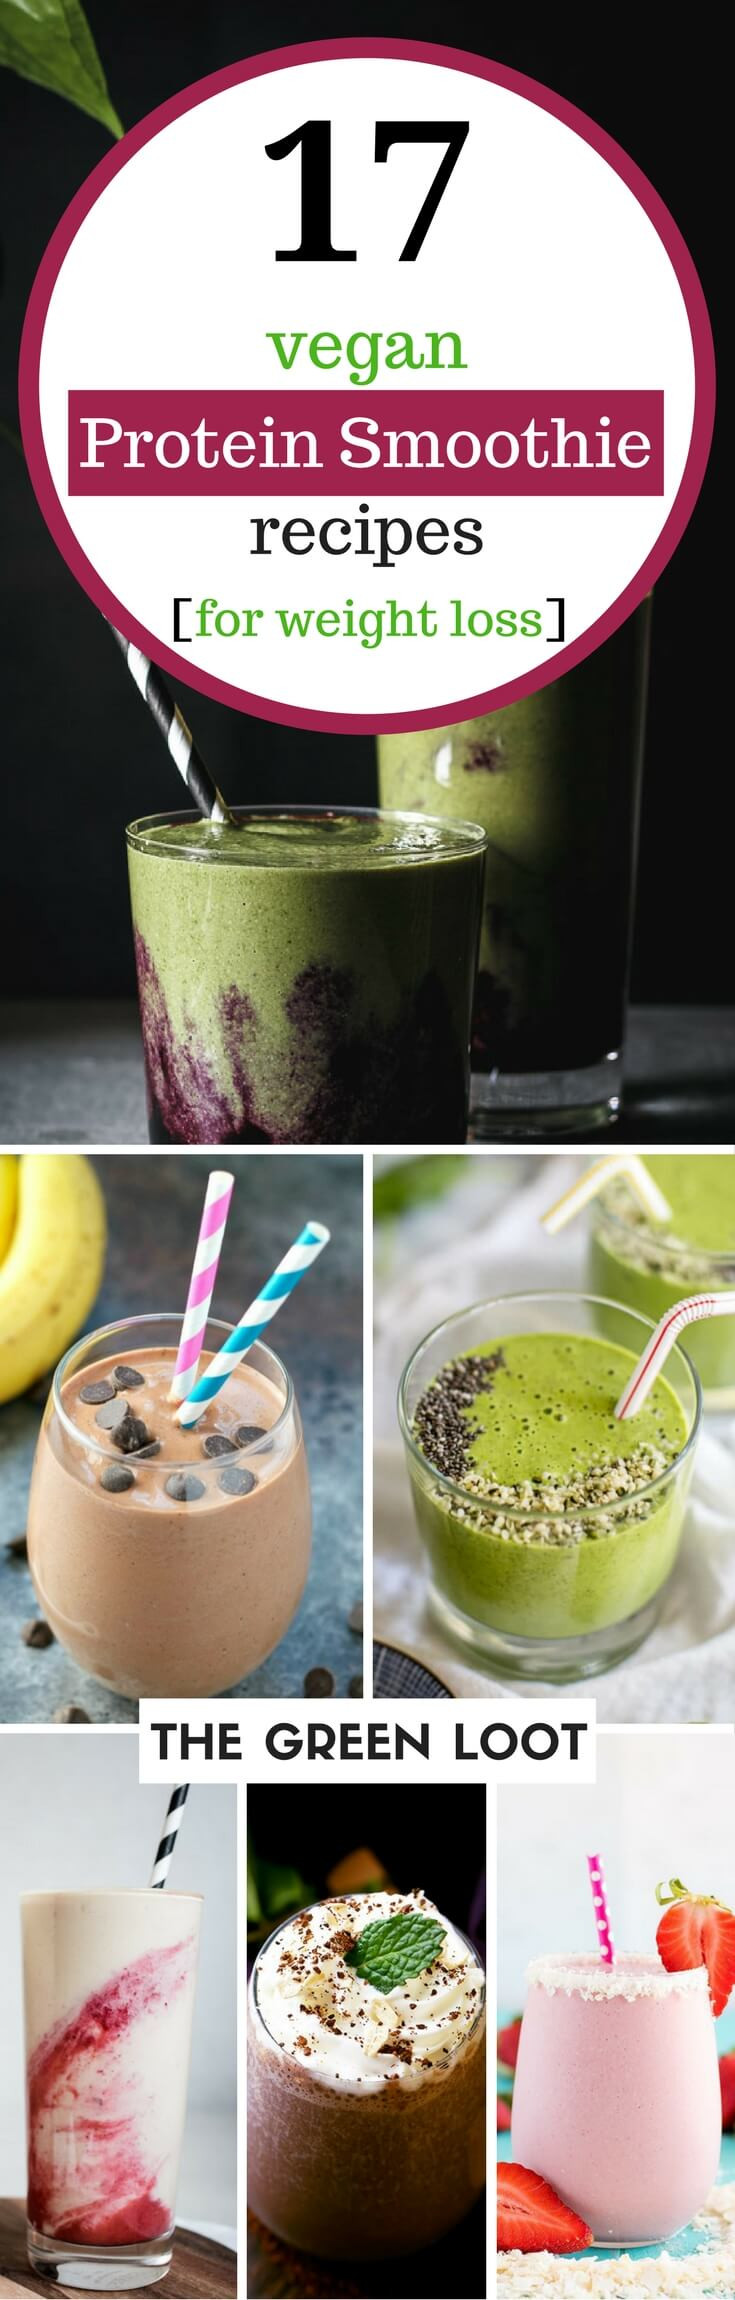 Weight Loss Smoothie Recipes  17 Tasty Vegan Protein Smoothie Recipes for Weight Loss